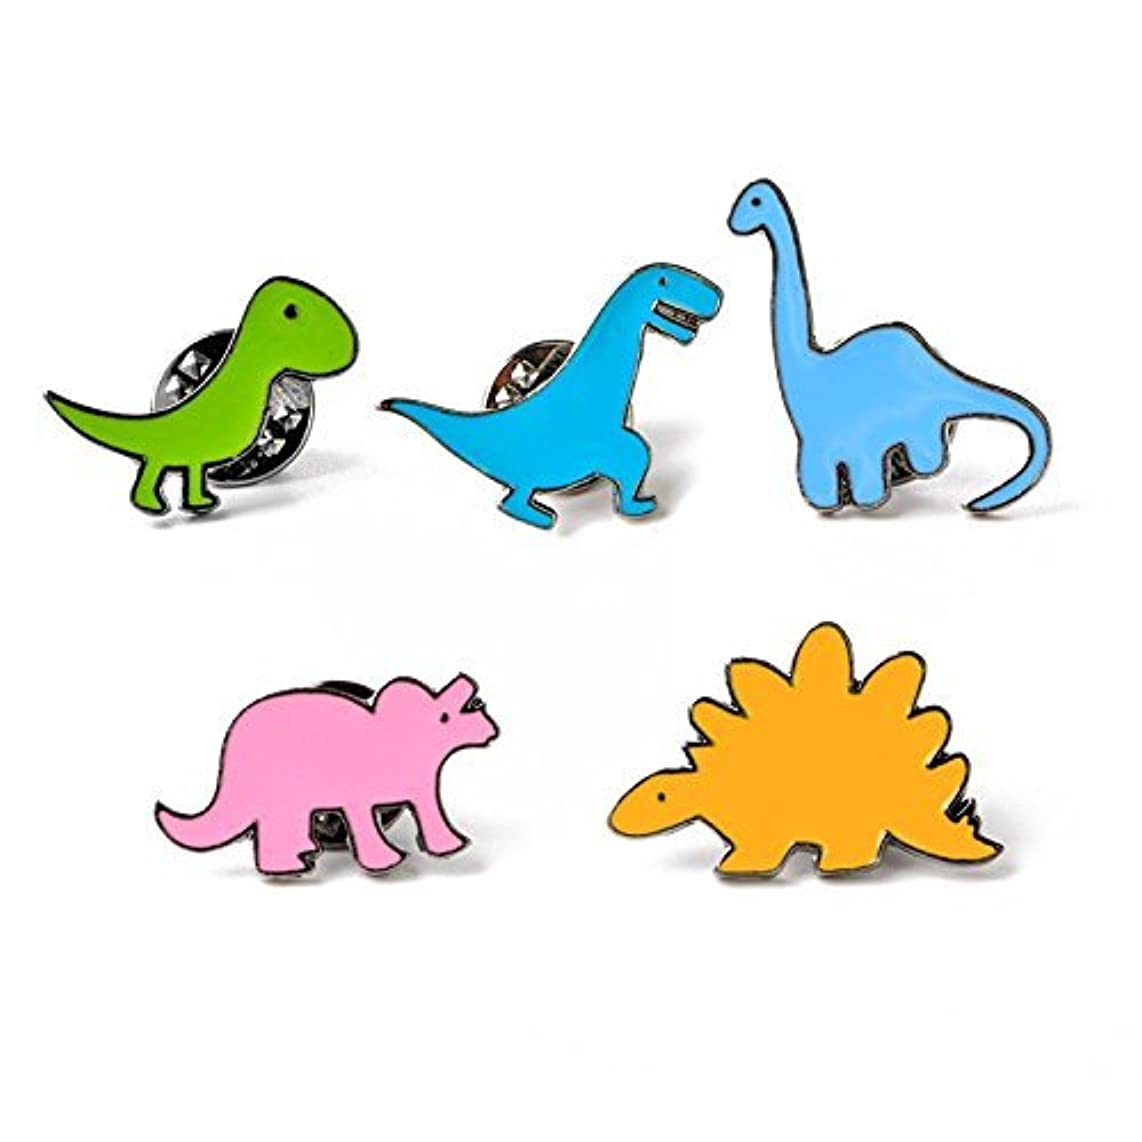 Potelin Premium Quality 5x Metal Enamel Pin Brooch Badge Cute Cartoon Dinosaur Series Brooches Suit Shirt Sweater Pin Children Birthday Pins for Children Toy Xmas Gift